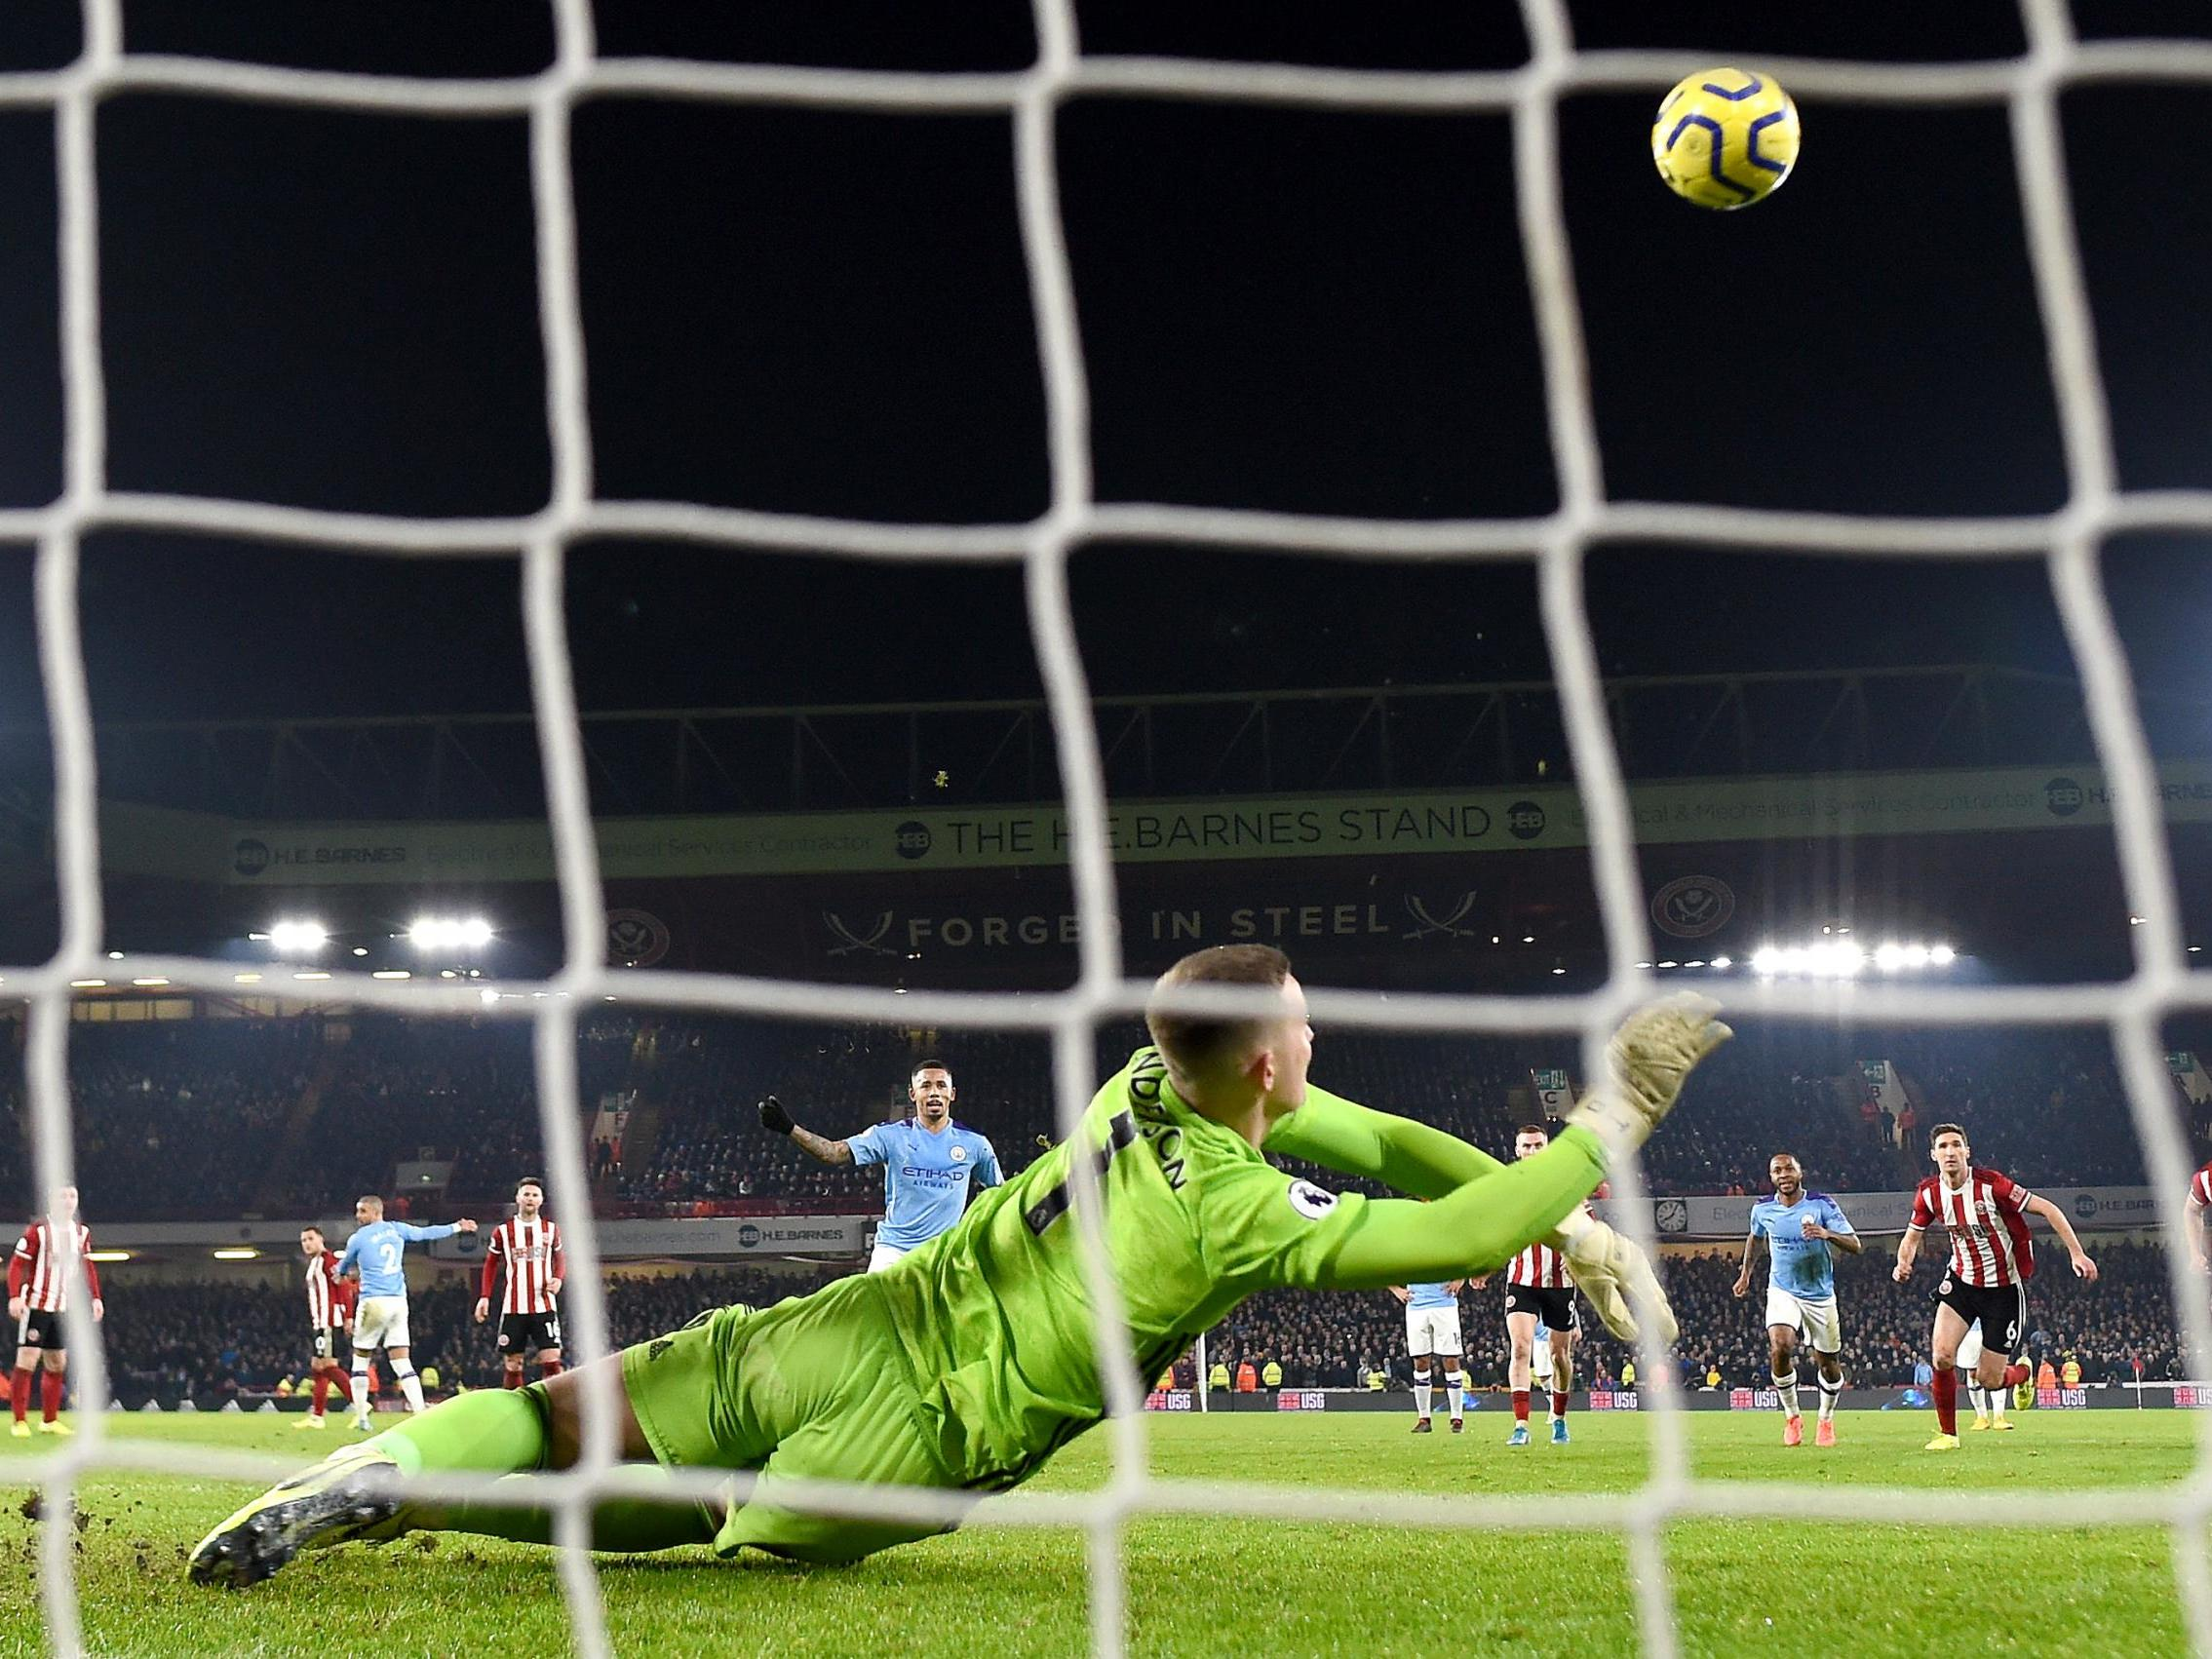 Sheffield United vs Manchester City: Why VAR did not order re-take of Gabriel Jesus missed penalty